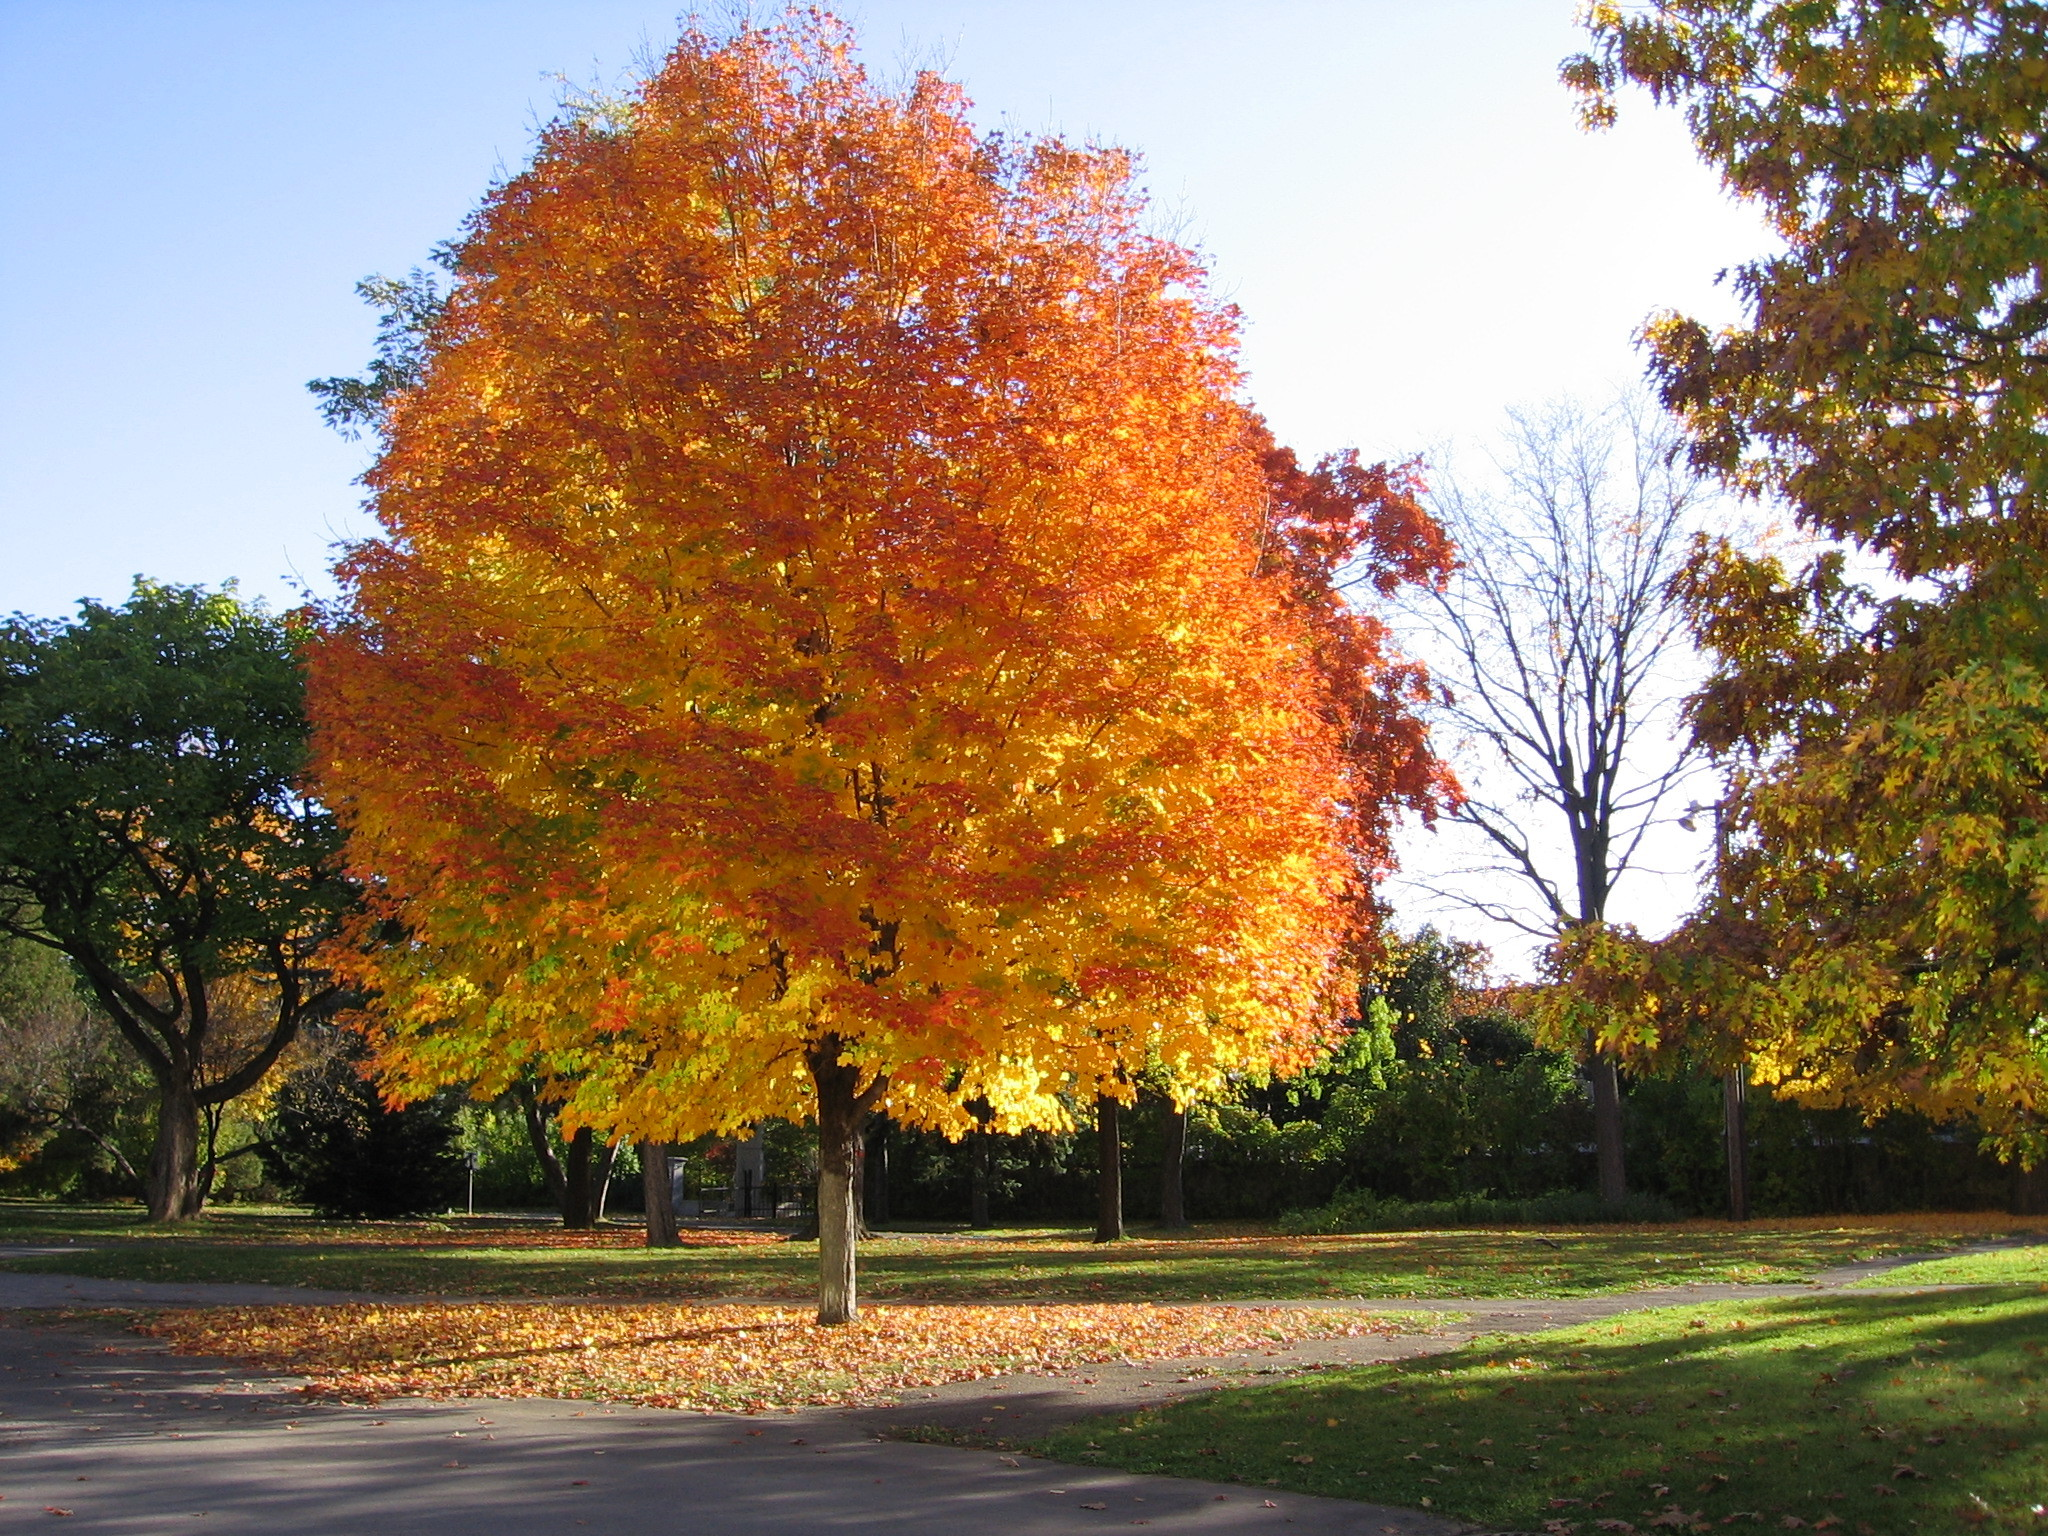 Omeka@ctl  Uvm Tree Profiles  Norway Maple  Invasive. Cheap Living Room Furniture In Dallas Tx. Living Room Design Ideas Eclectic. Living Room Decor Eclectic. Living Room Kitchen Color Schemes. Images Living Room Lighting. Living Room Painting Color Schemes. Living Room Chairs Pinterest. The Living Room Realty